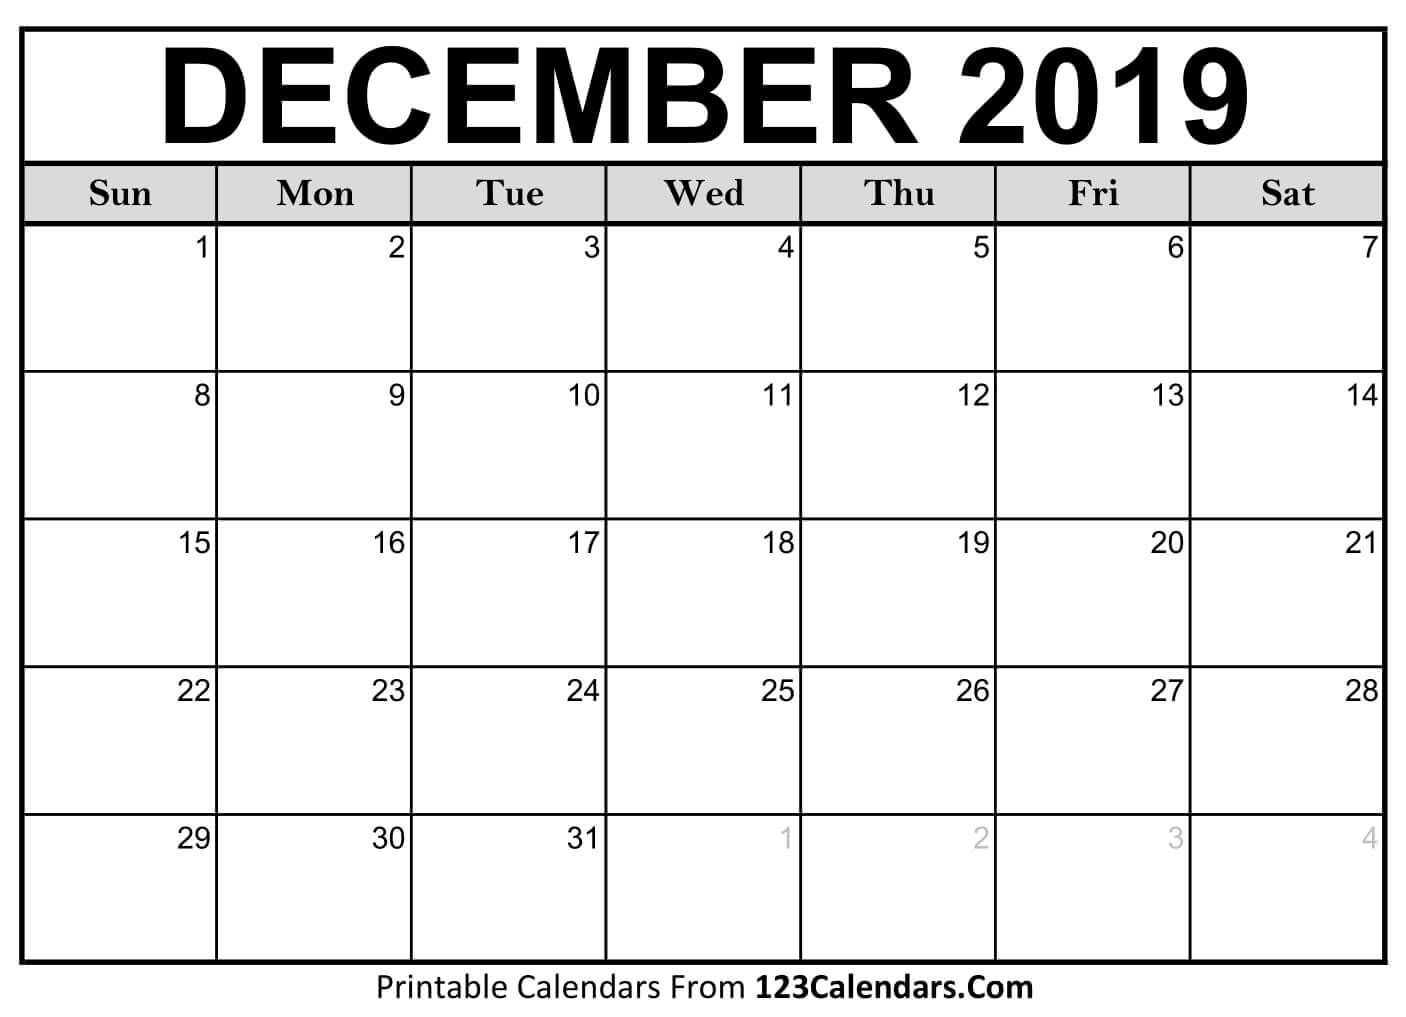 Printable December 2019 Calendar Templates  123Calendars in 123 Calendars December 2020